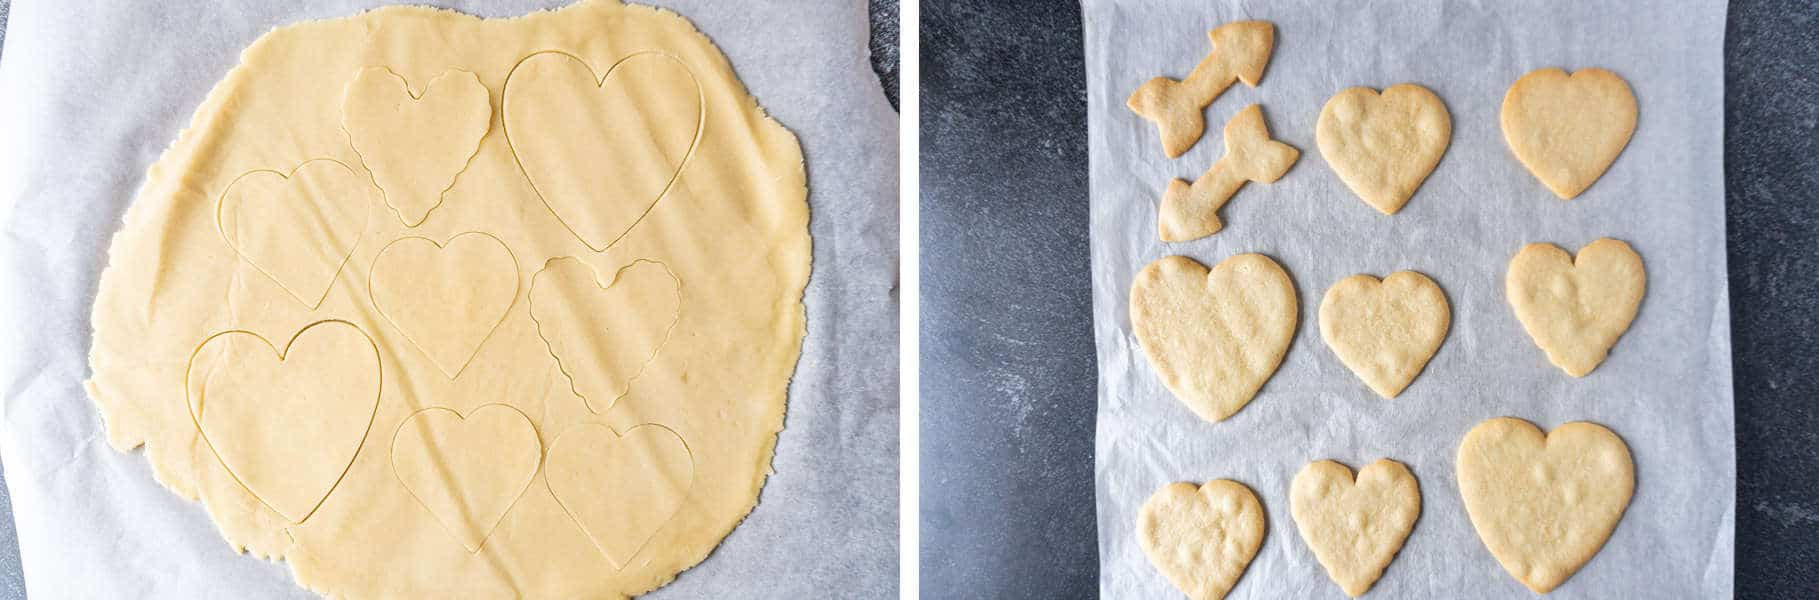 Valentine's Sugar Cookies cut out before baking and after baking